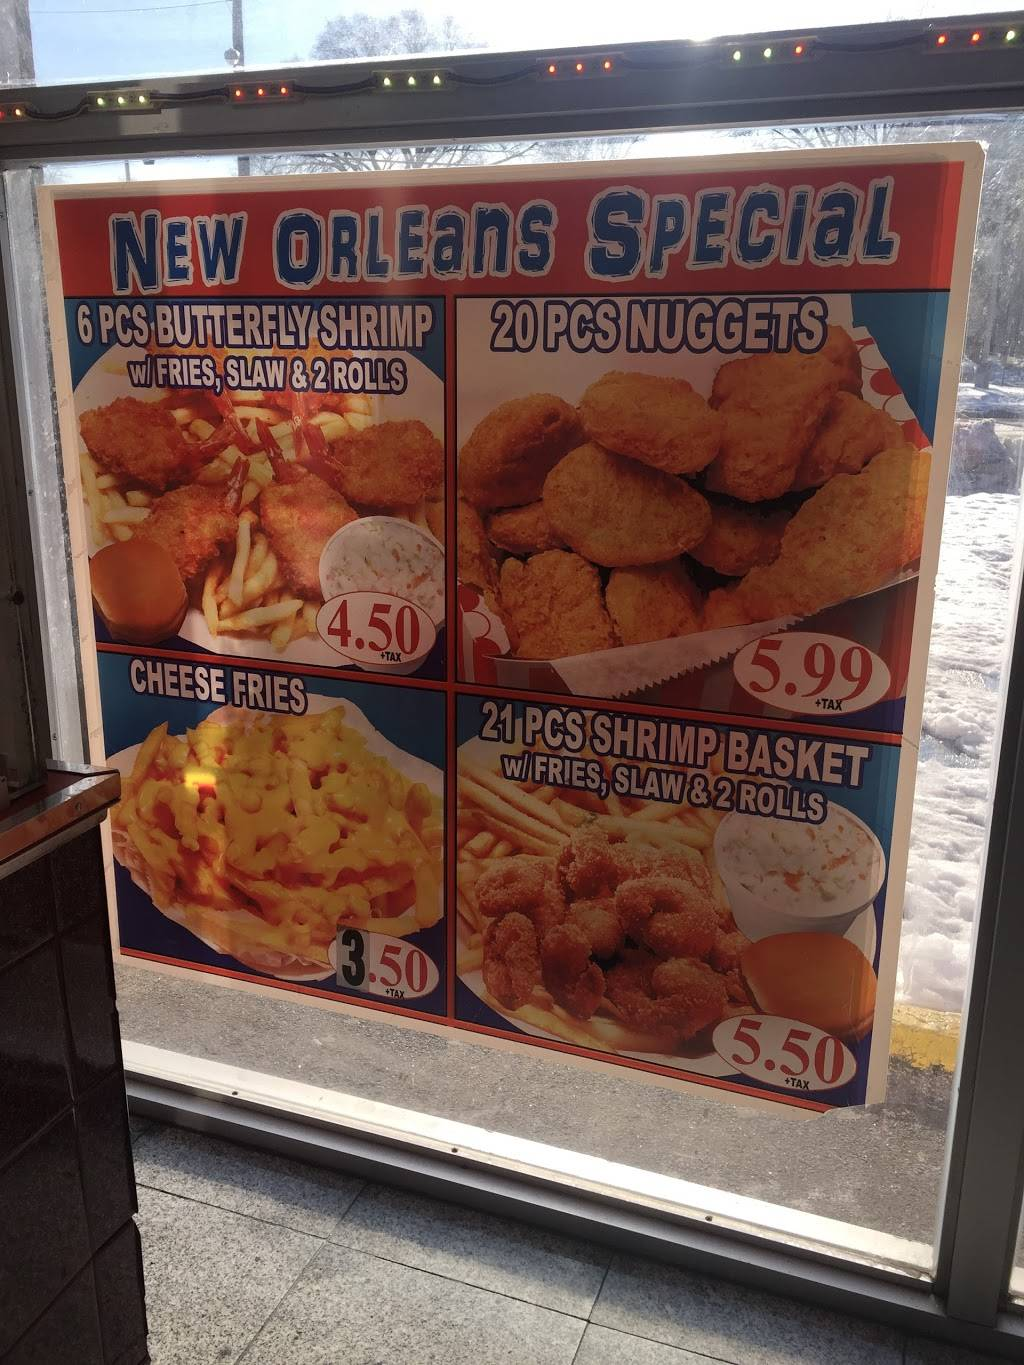 New Orleans Chicken   restaurant   854 Sound View Ave, Bronx, NY 10473, USA   7188425309 OR +1 718-842-5309